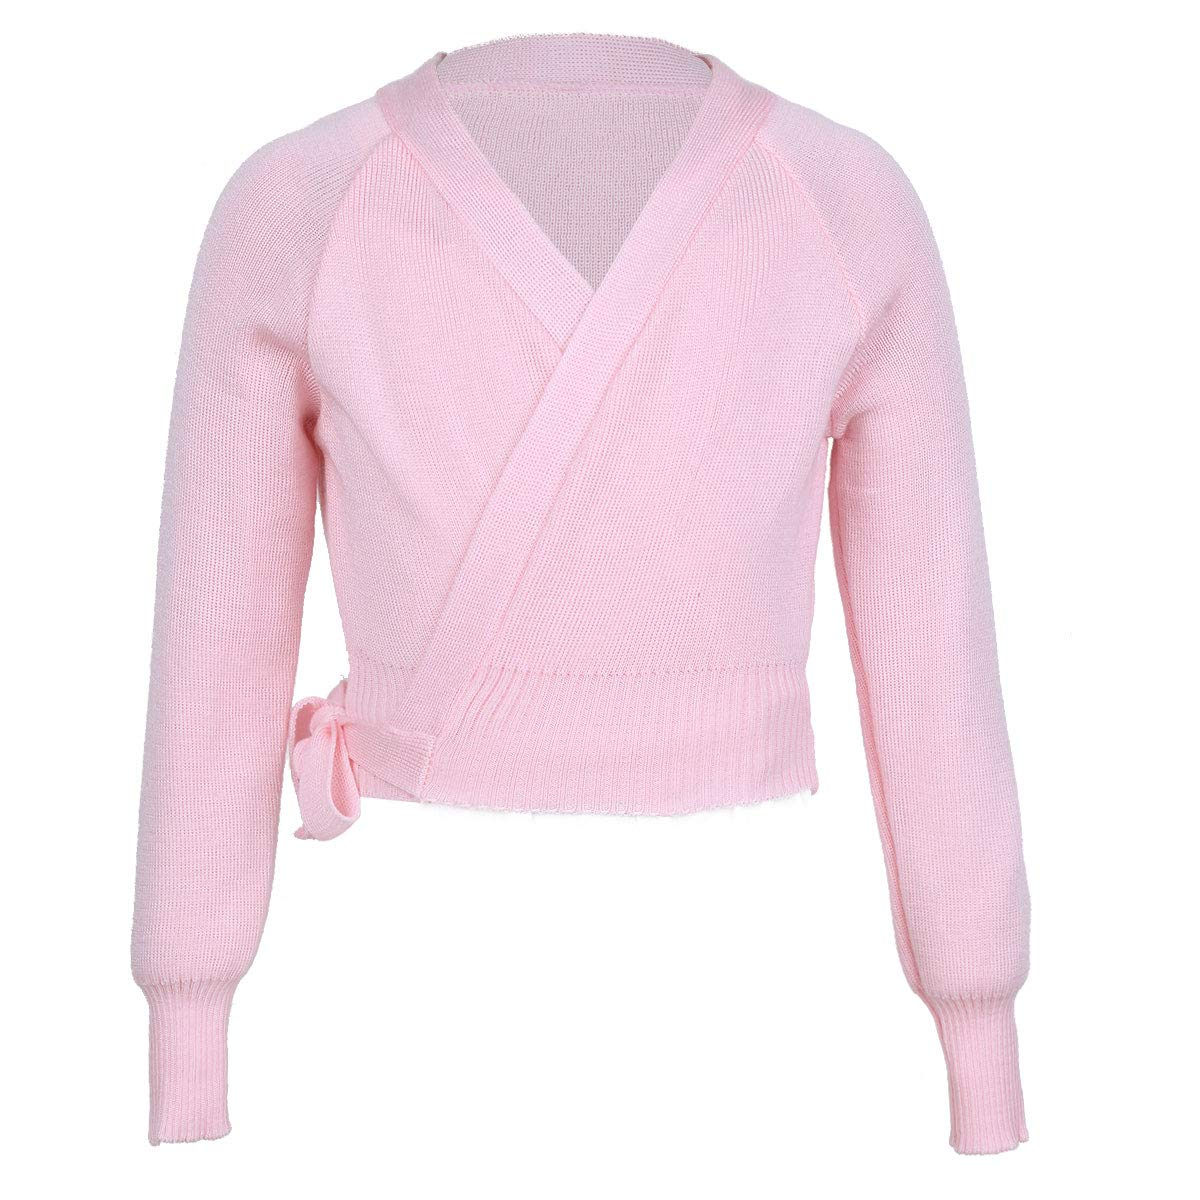 iEFiEL Girls Front Twist Knot Long Sleeve Ballerina Dance Cotton Wrap Top Pink Knit Wrap 9-10 by iEFiEL